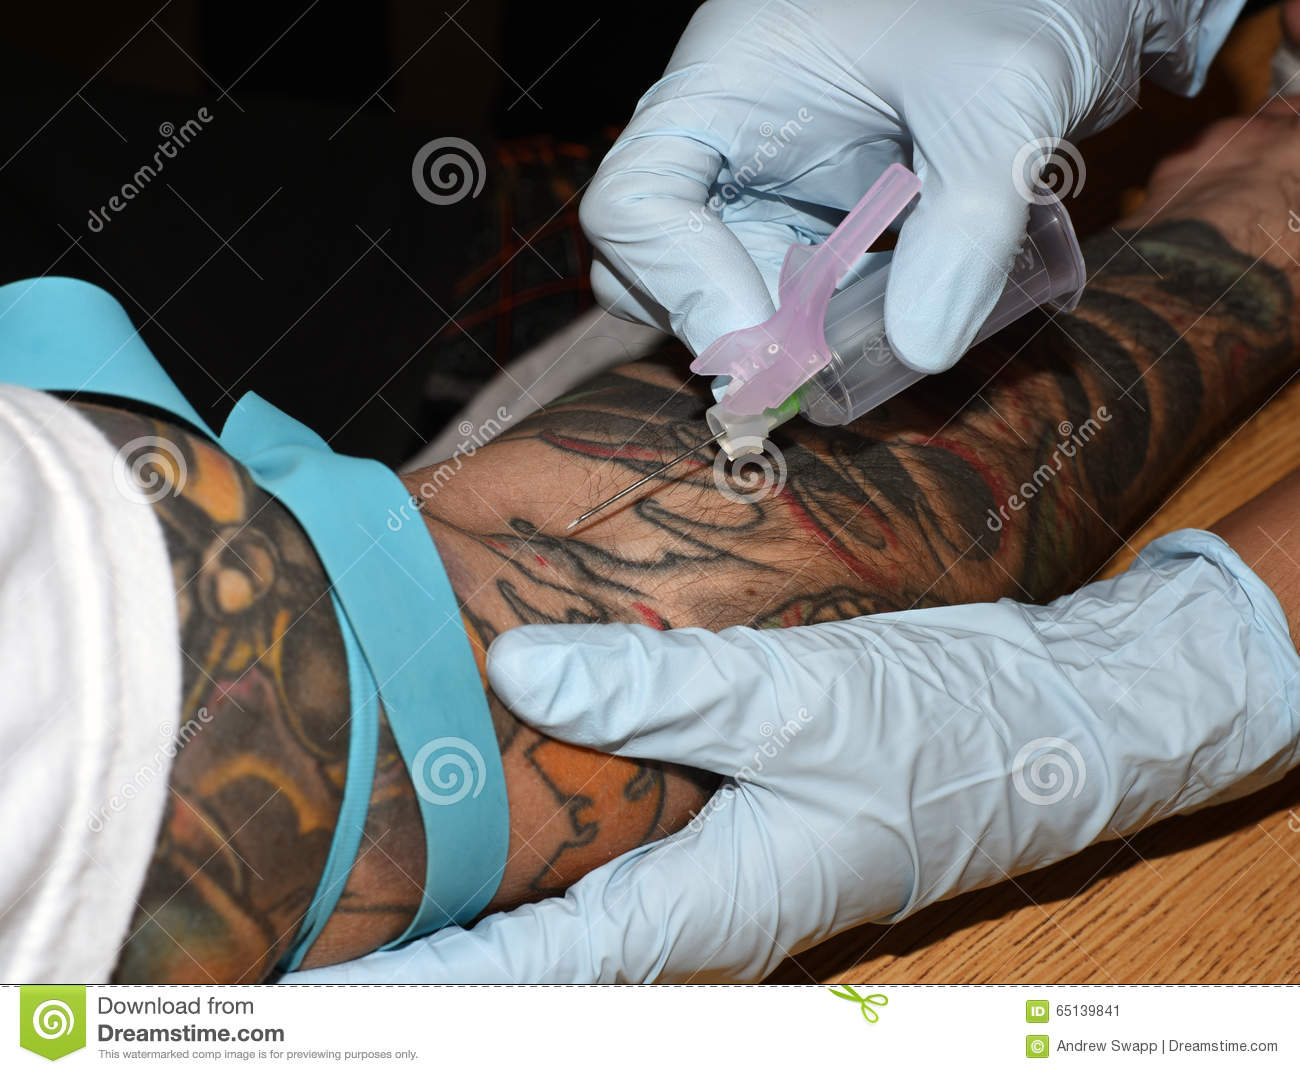 drawing blood from a tattooed arm stock photo